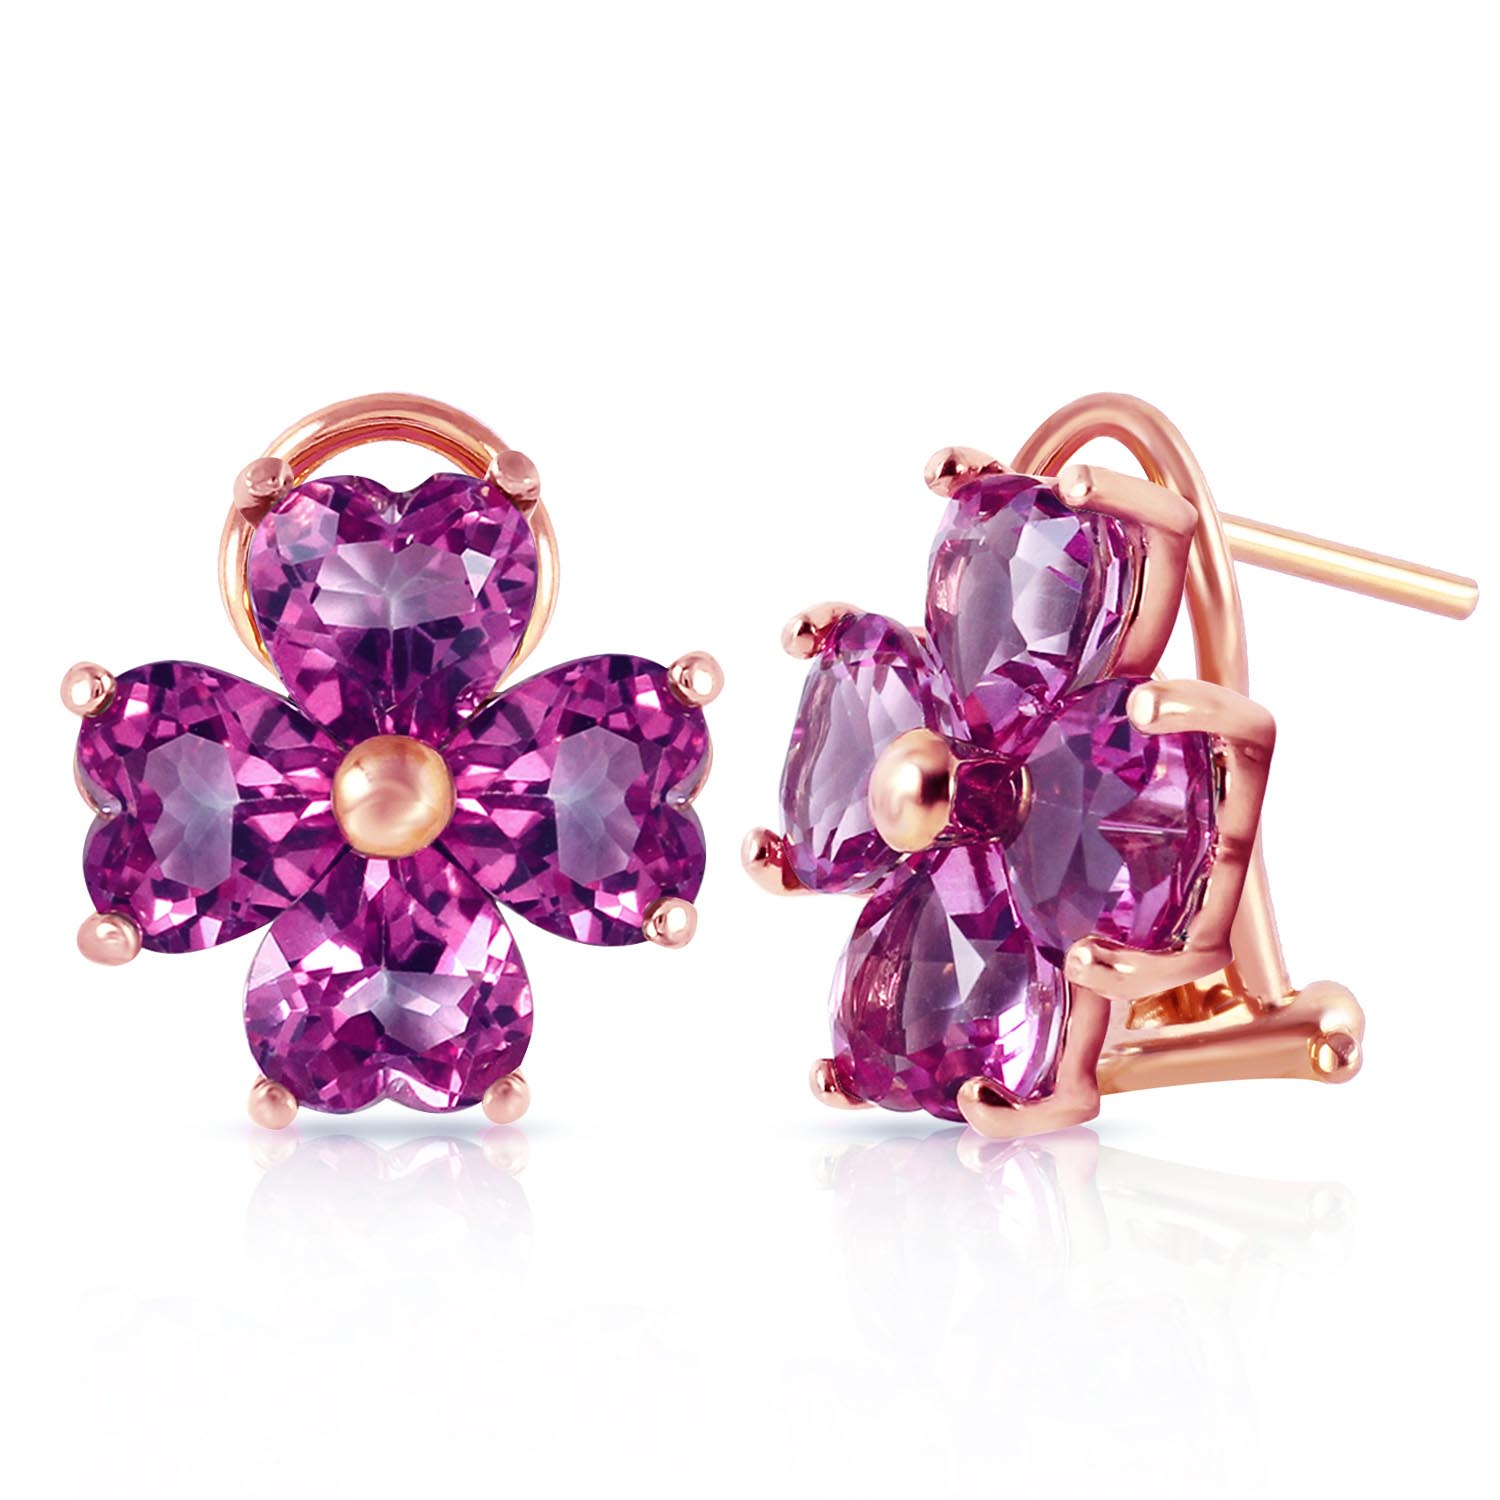 Amethyst Flower Stud Earrings 6.5 ctw in 9ct Rose Gold